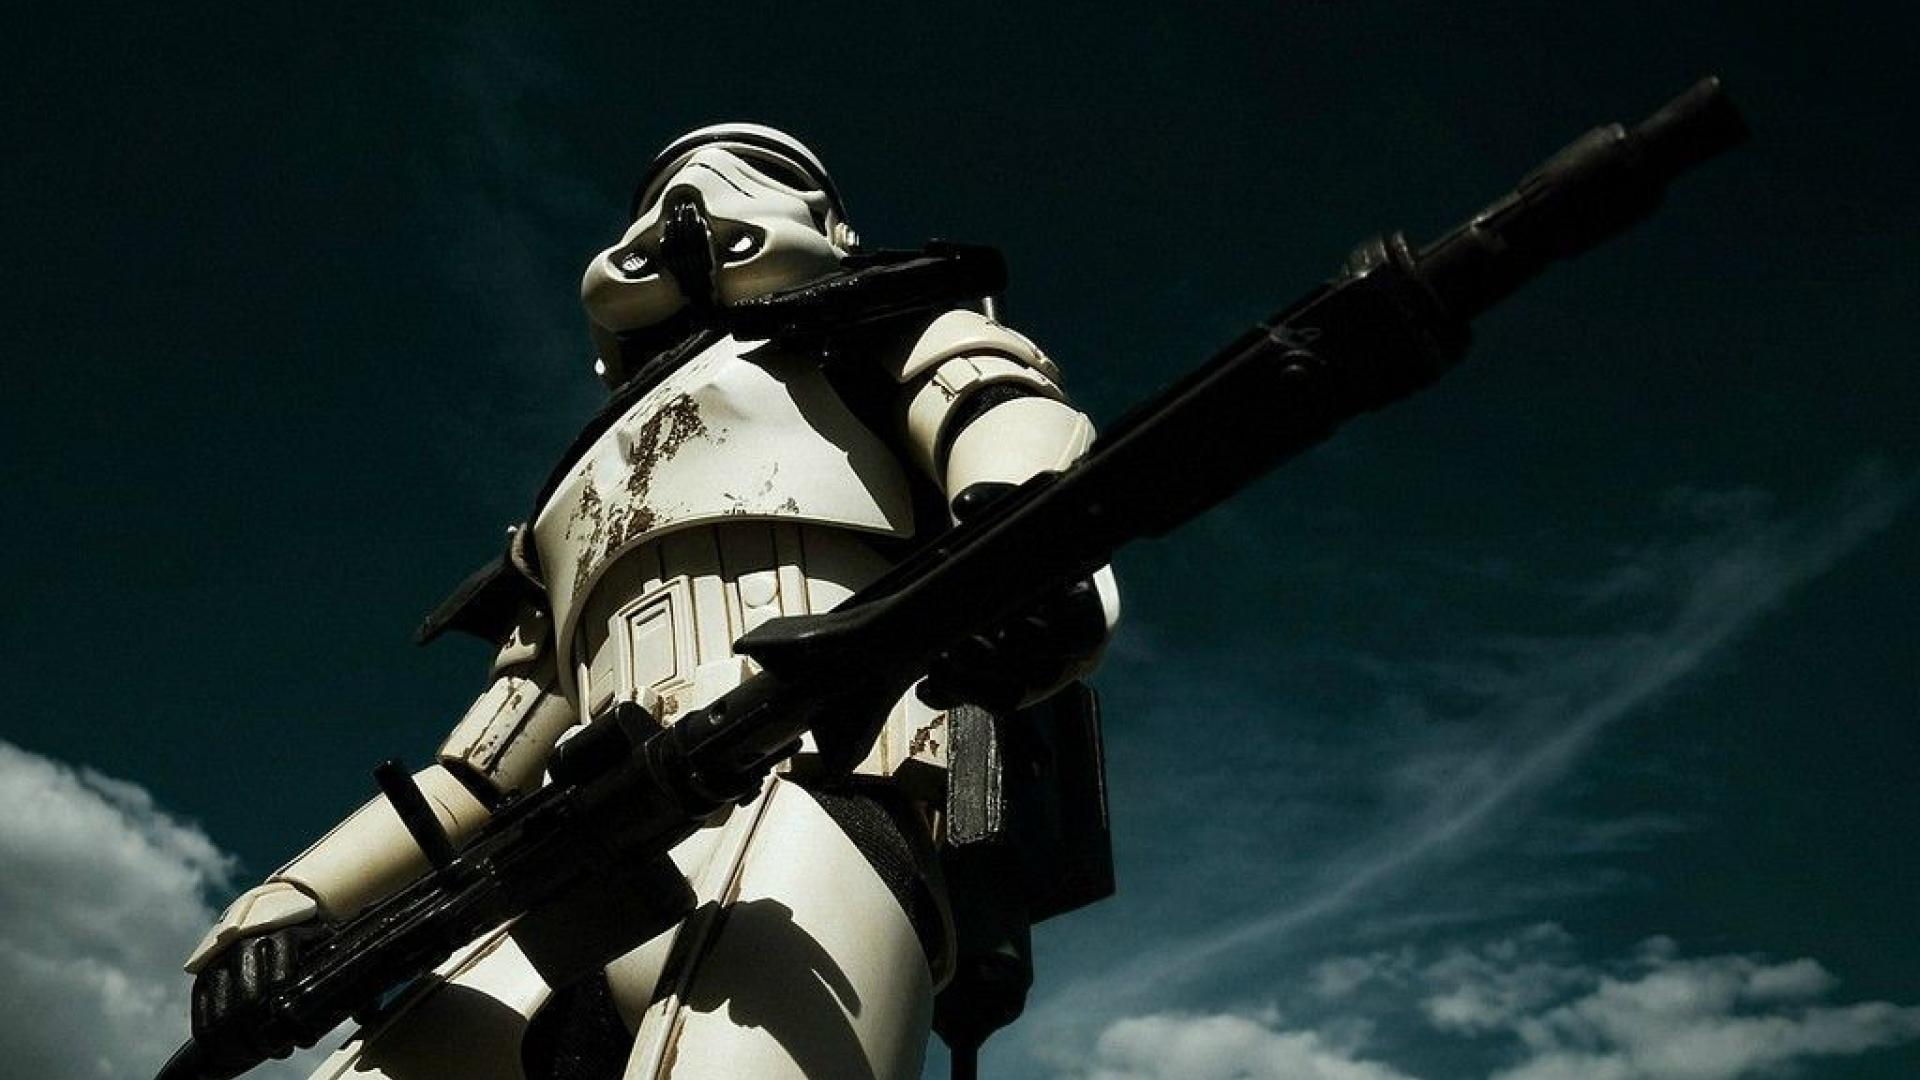 Star wars stormtroopers galactic empire storm trooper wallpaper 1920x1080